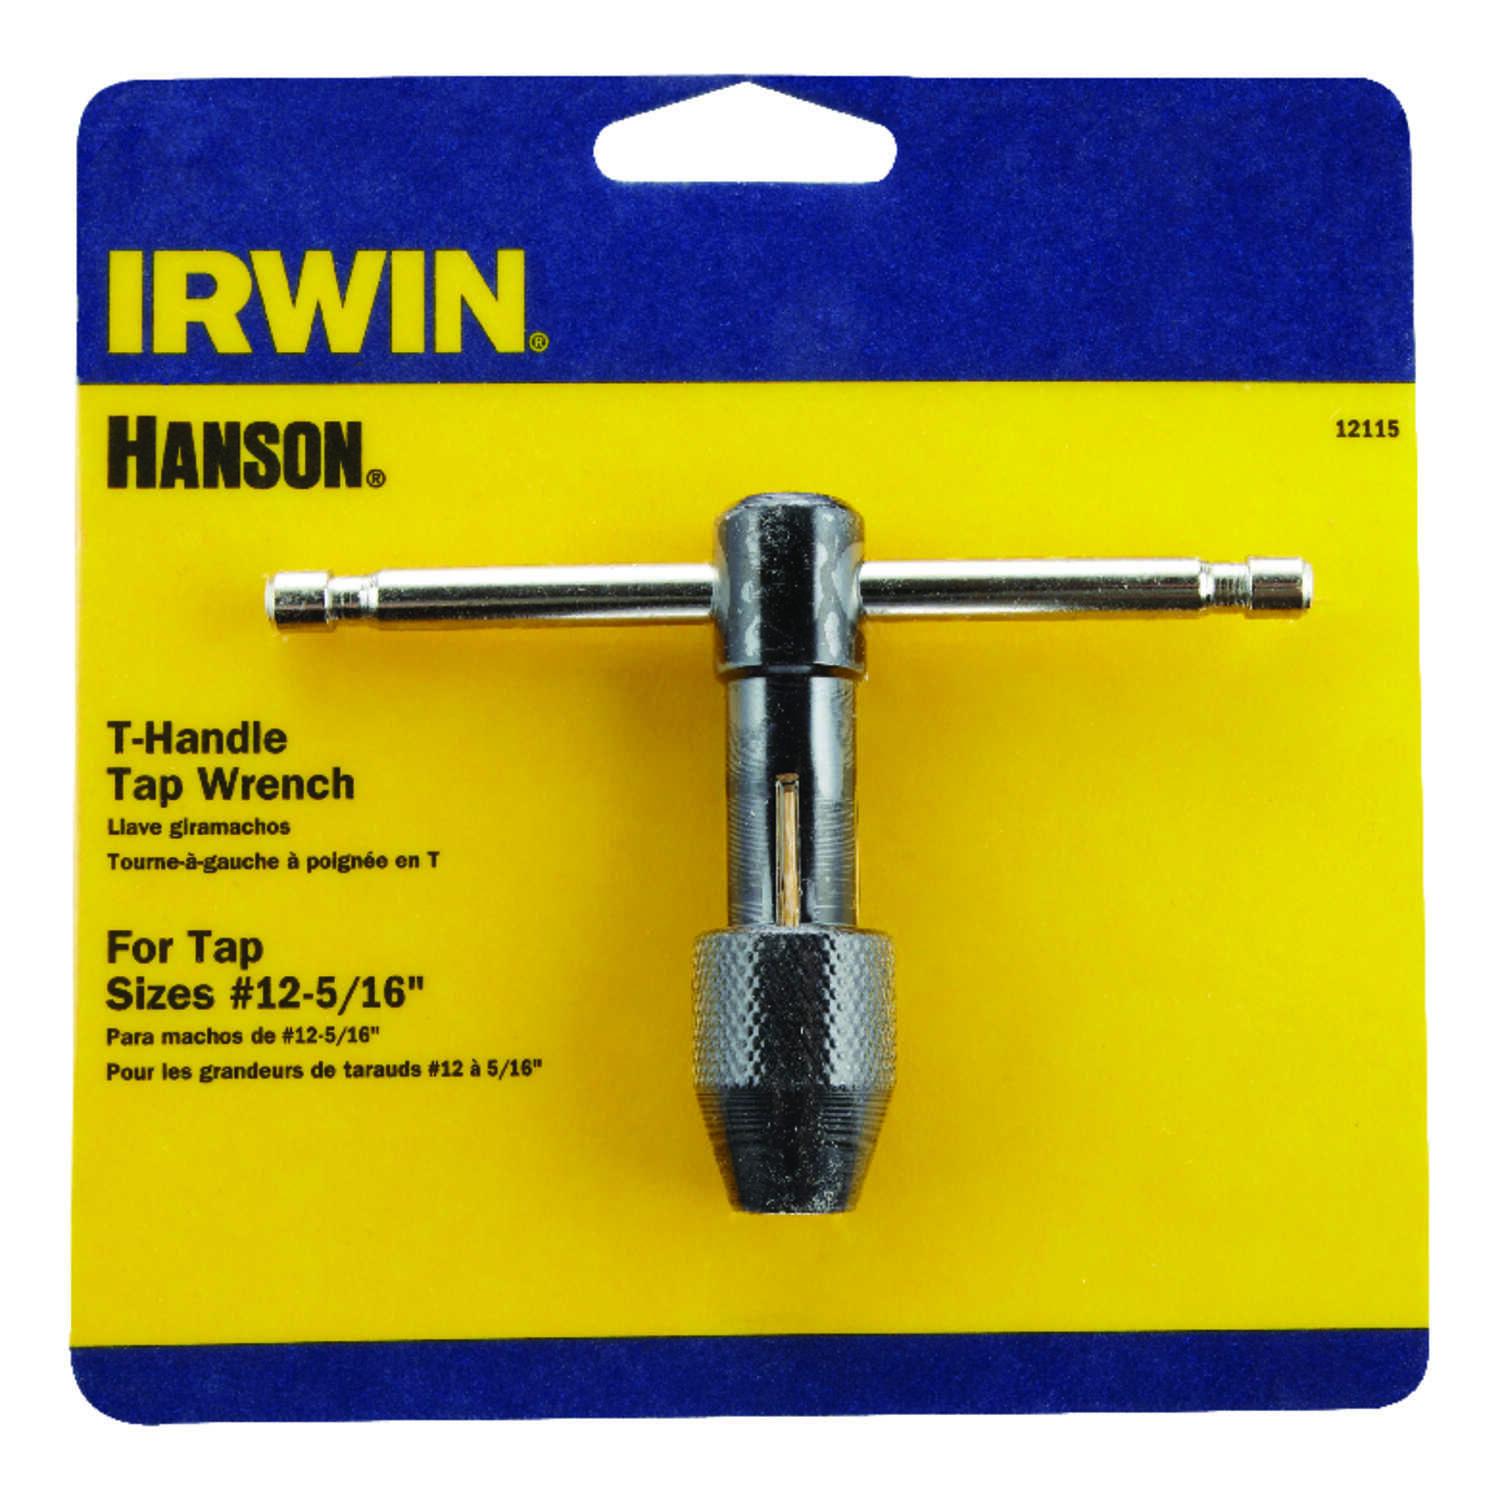 Irwin  Hanson  High Carbon Steel  T-Handle Tap Wrench  #12 to 5/16 in.  1 pc.